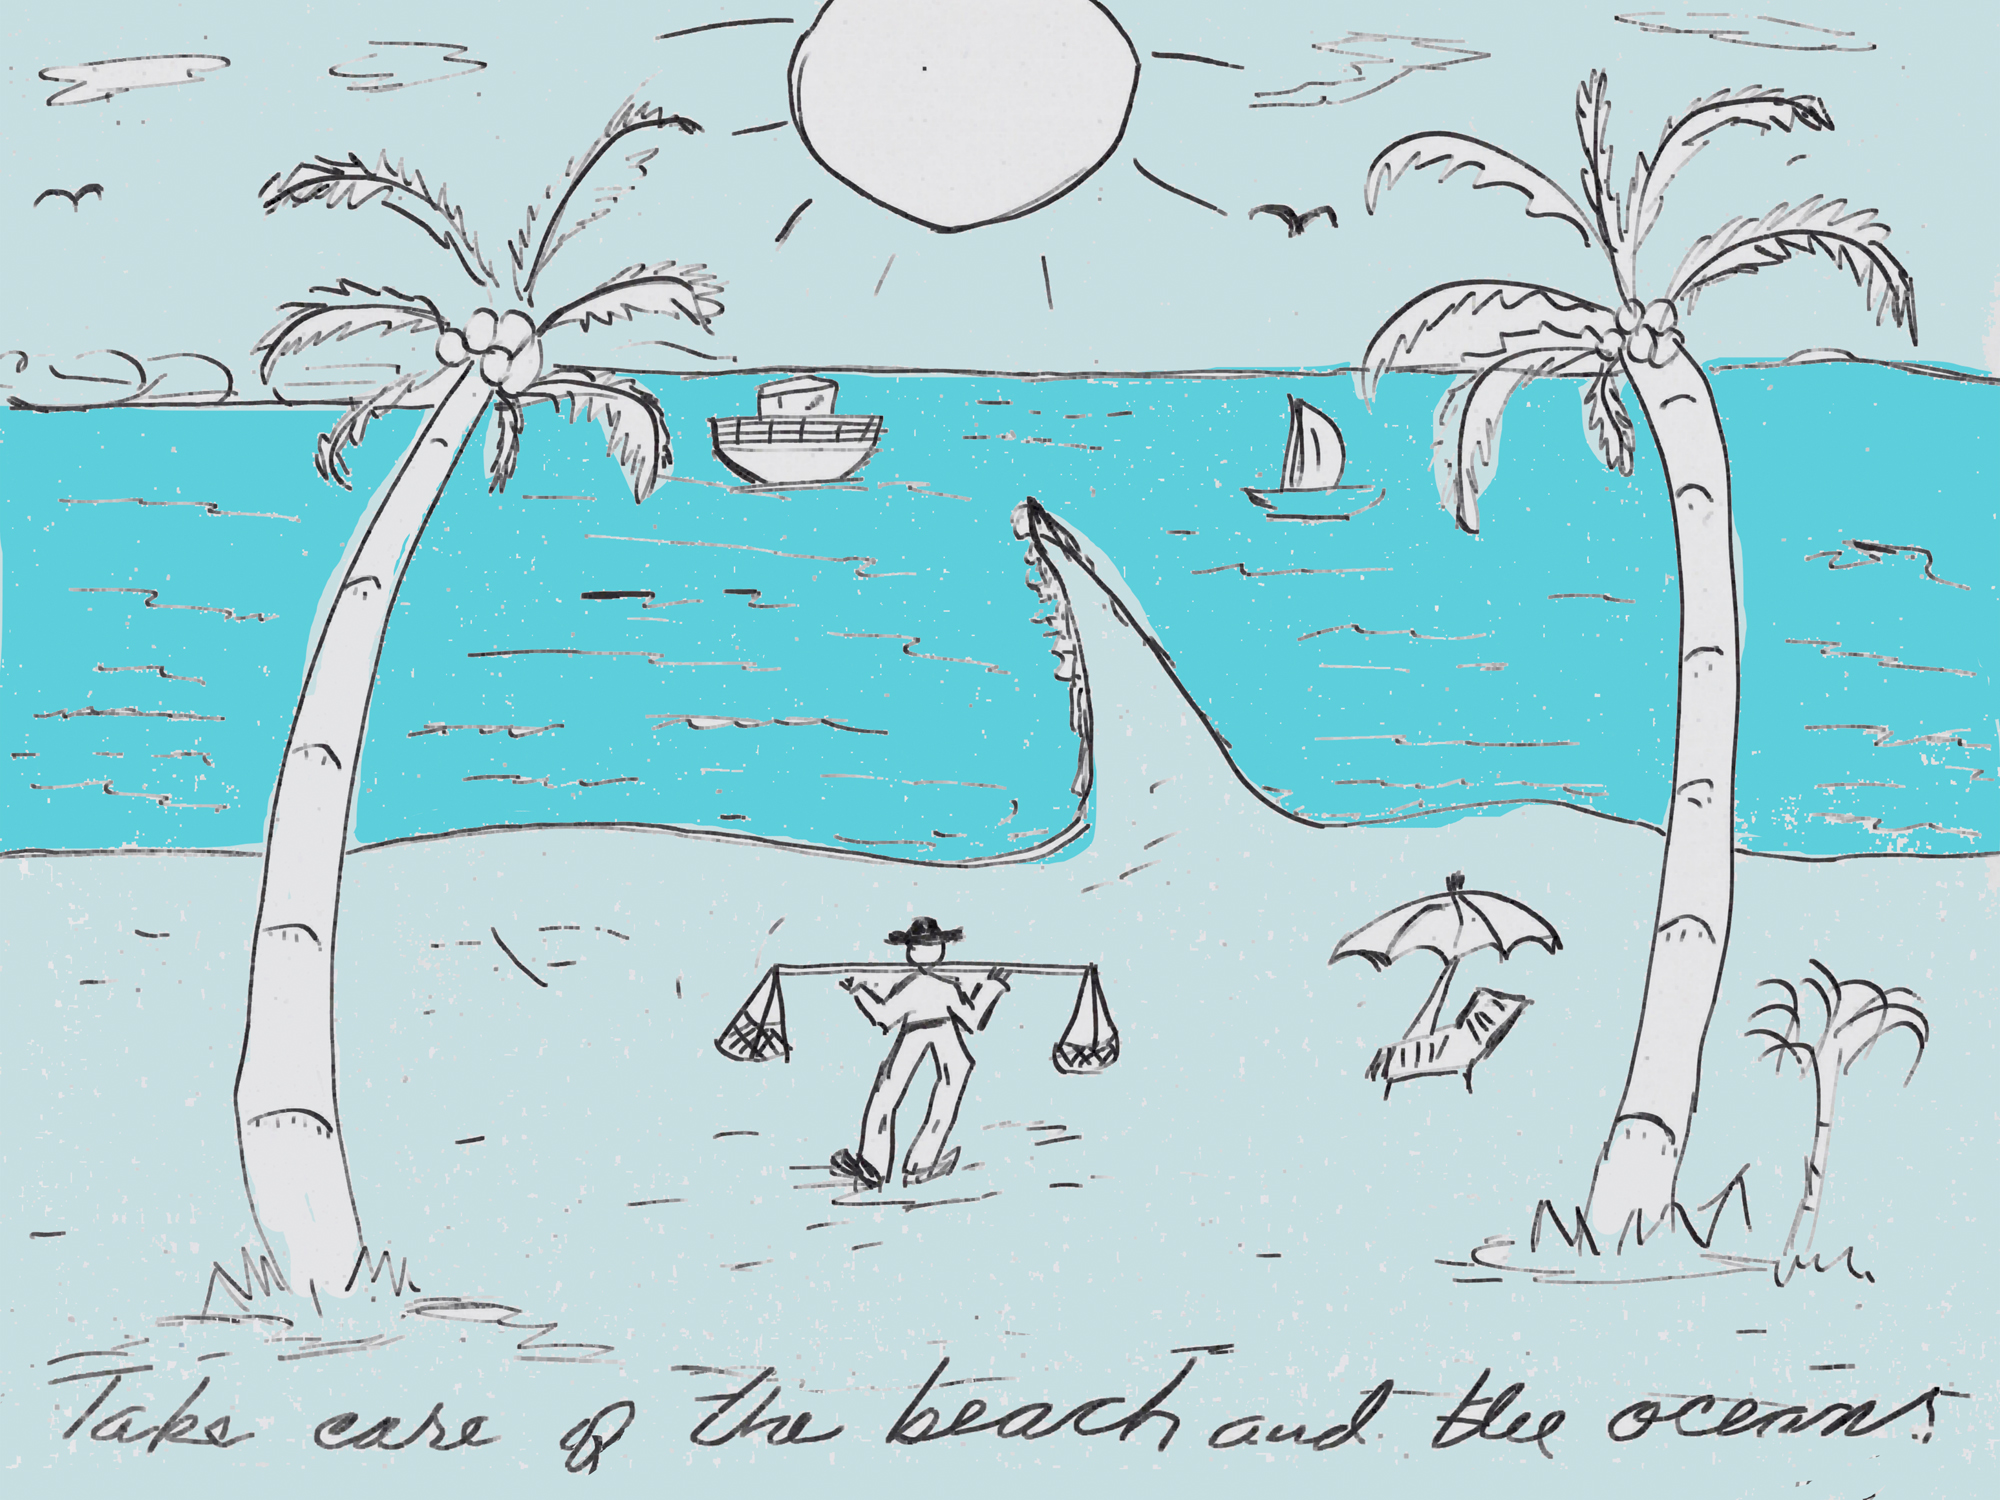 take care of the beach and ocean.jpg